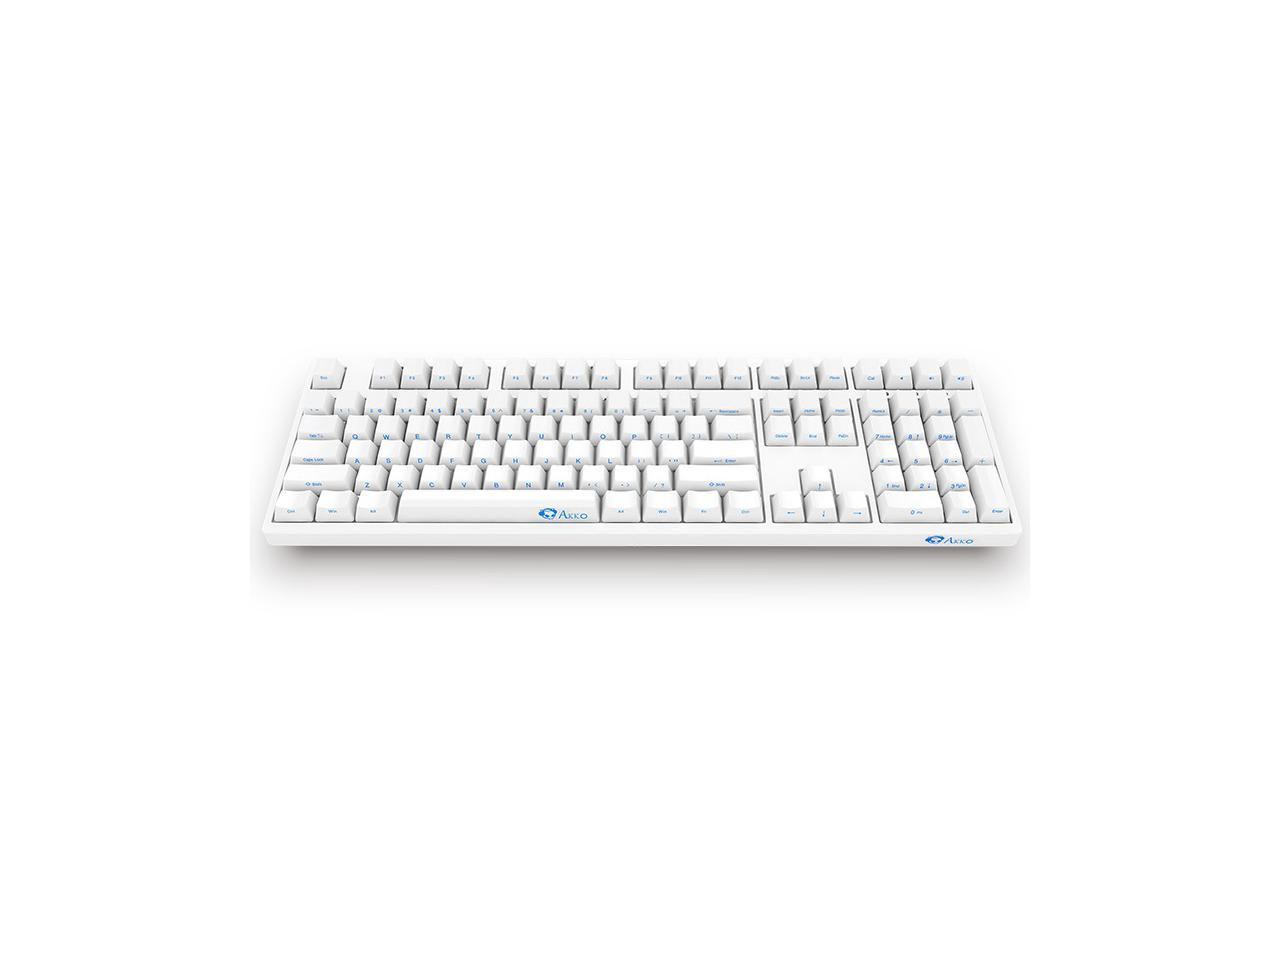 Akko 3108 Full Size Gaming Mechanical Keyboard Cherry Mx Black Switch Double Shot Dye Sub Pbt Keycaps Nkro Detachable Usb Type C Wired Side Printed Carved Letter White Newegg Com